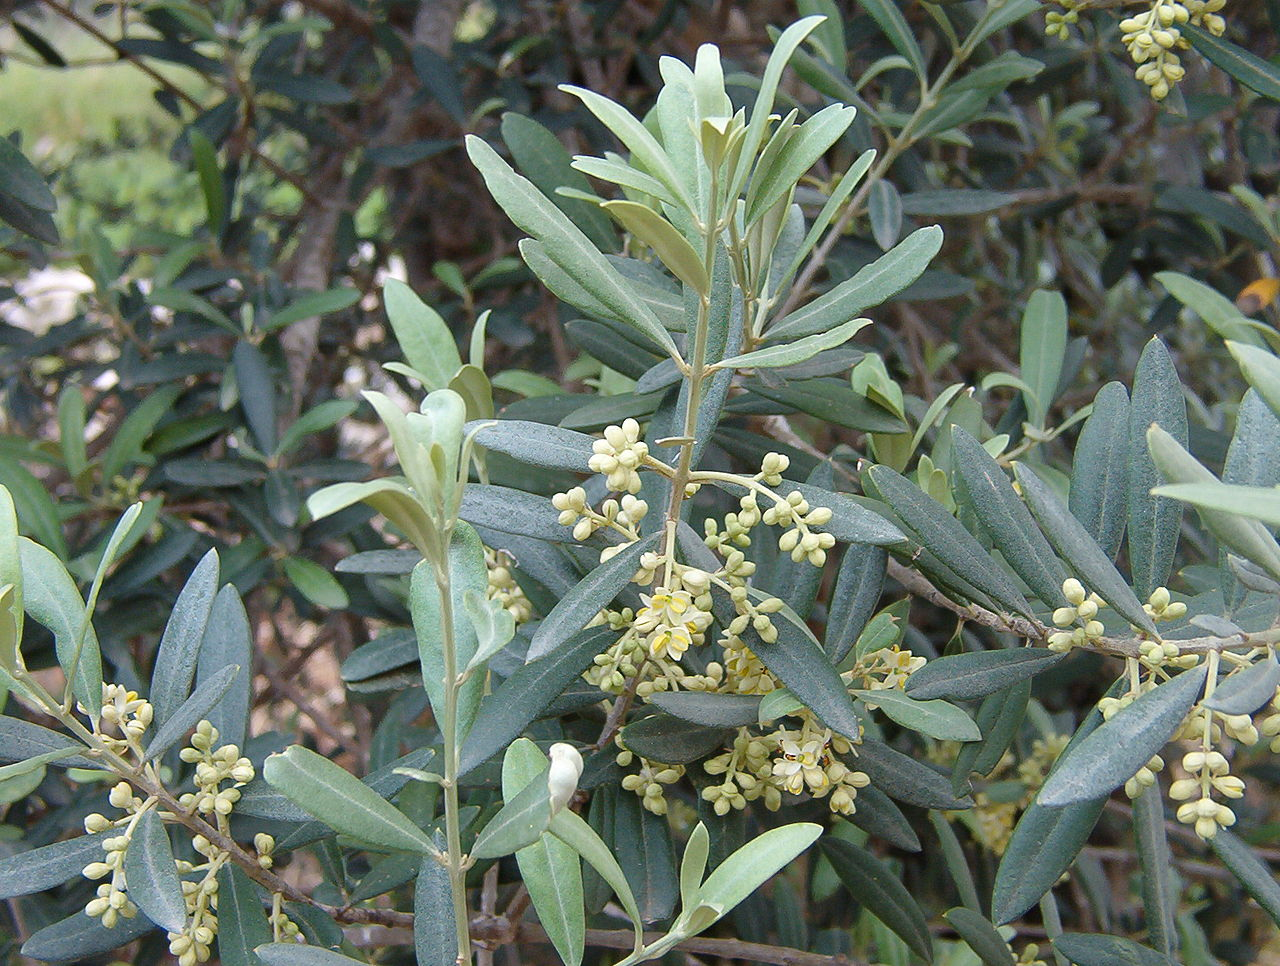 http://upload.wikimedia.org/wikipedia/commons/thumb/c/c0/Olive_blossoms.jpg/1280px-Olive_blossoms.jpg